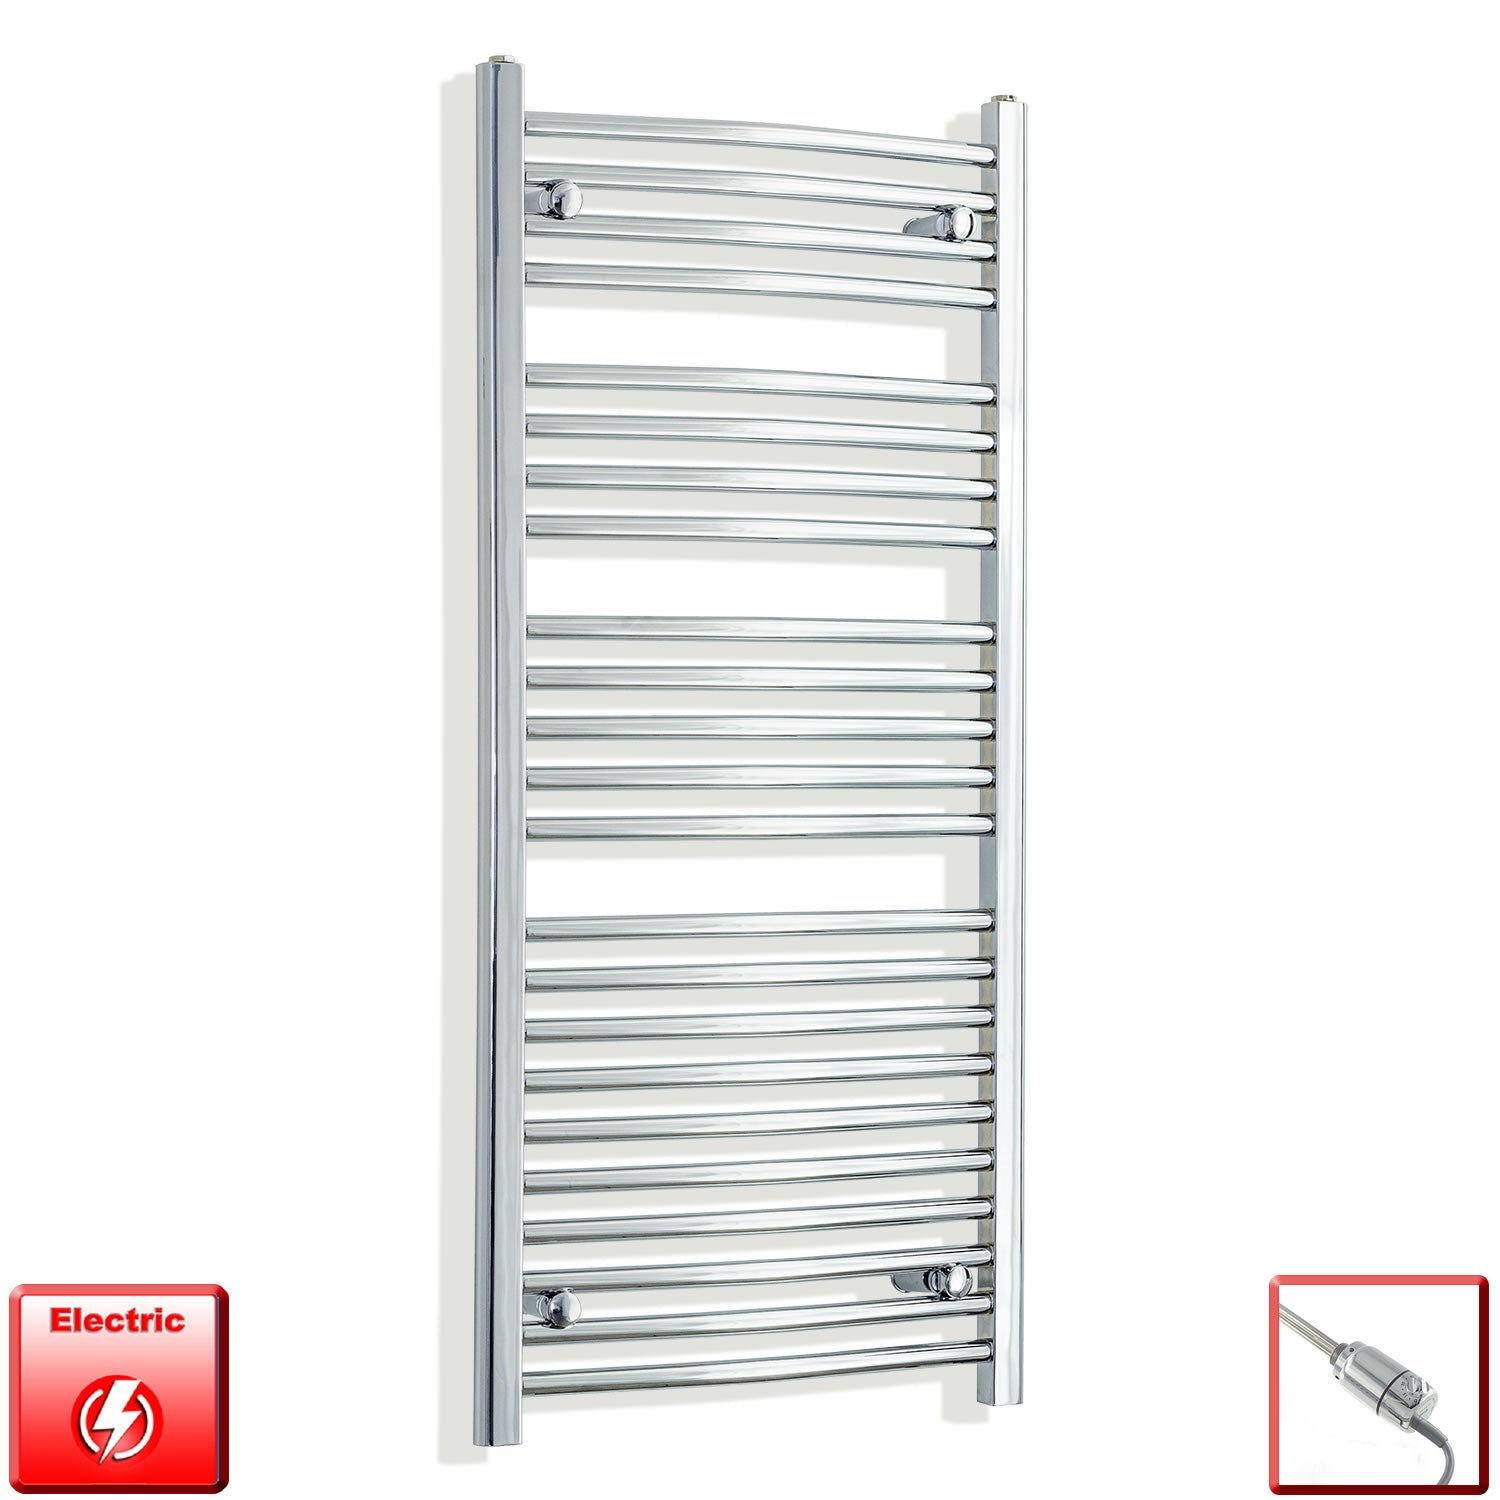 550 x 1200 Flat Chrome Heated Towel Rail Radiator Gas or Electric,Pre-Filled Thermostatic Element